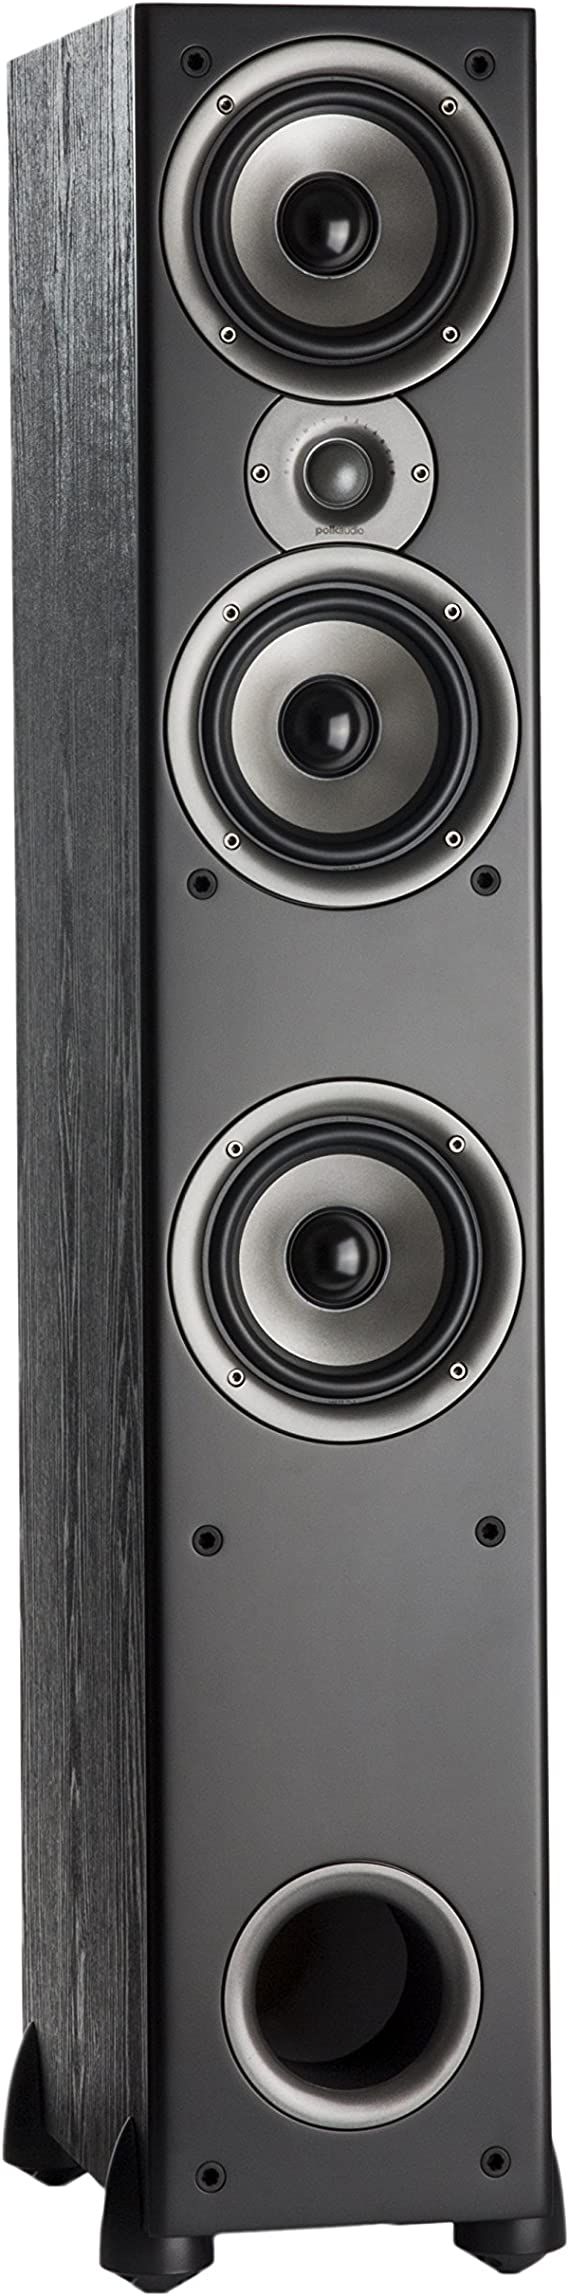 Polk Audio Monitor 60 Series II Floorstanding Speaker (Black